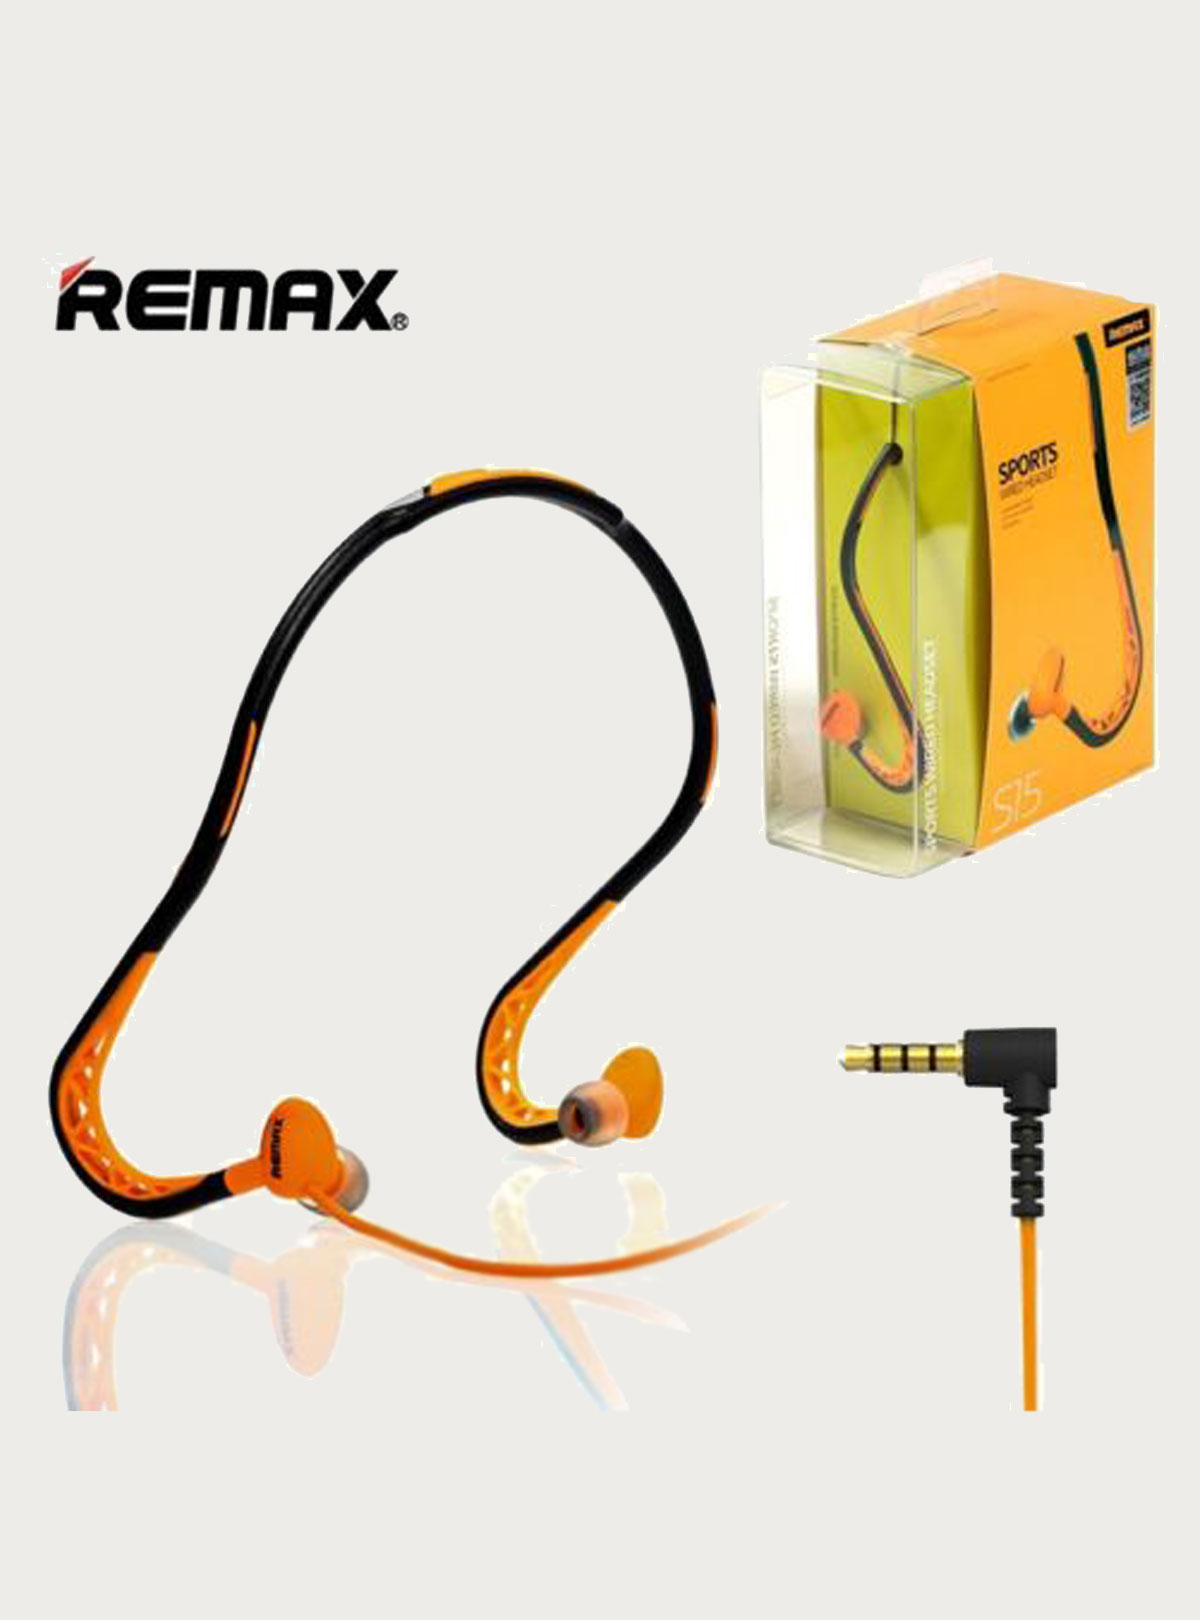 Remax RM-S15 Sports Wired Headset Neckband Headphone With MIC